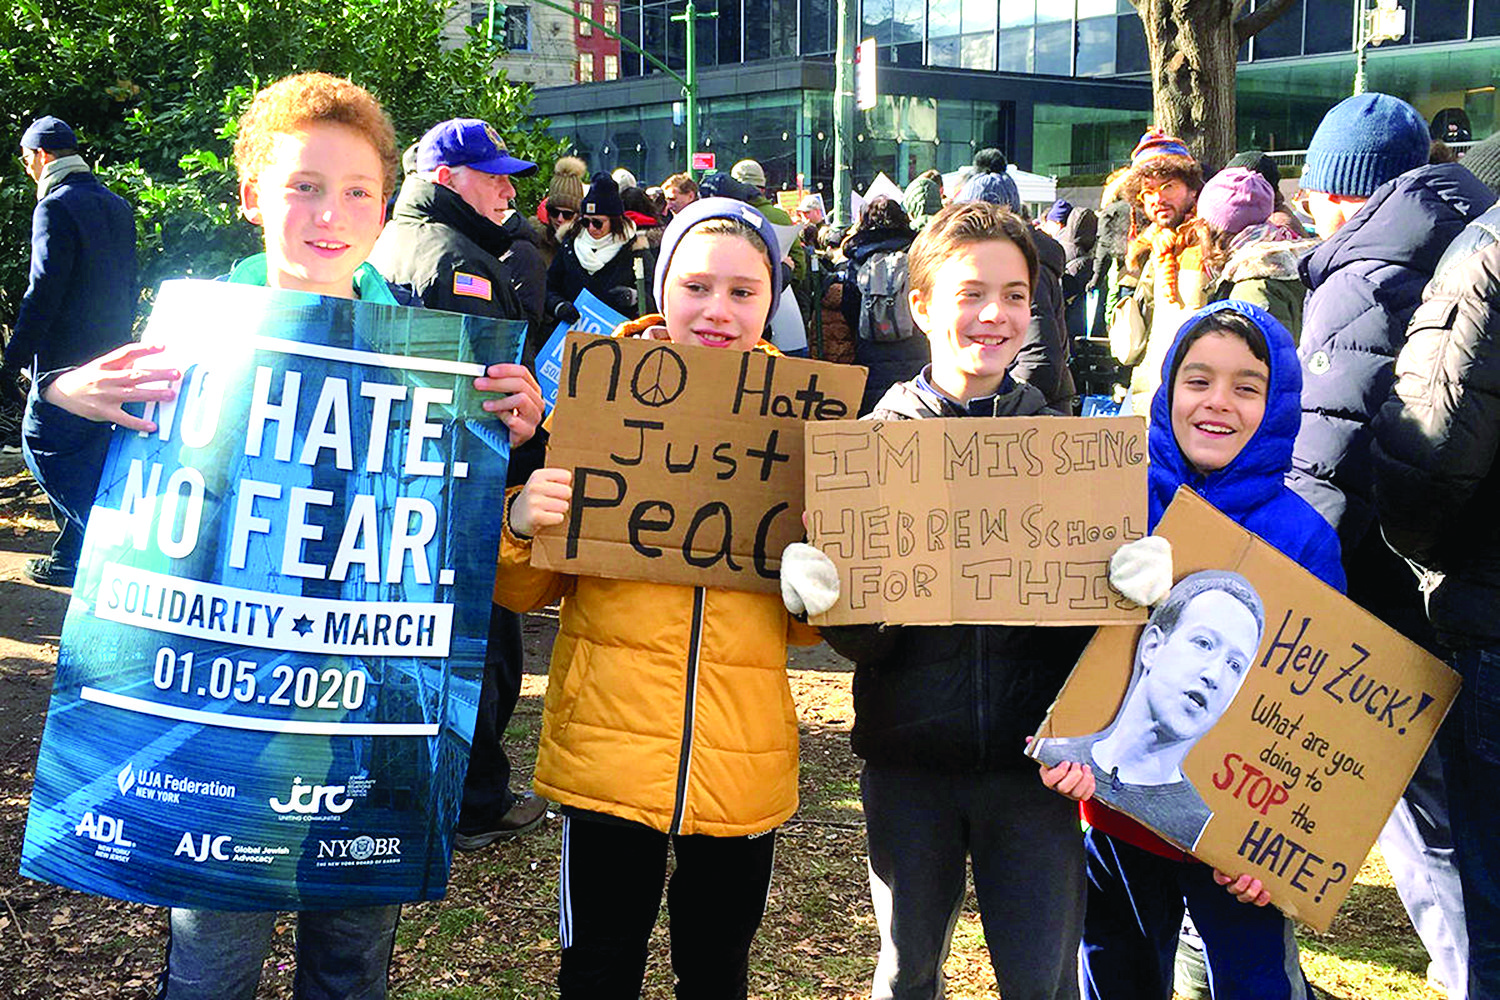 Kids at the march against anti-Semitism in New York, Jan. 5, 2020.